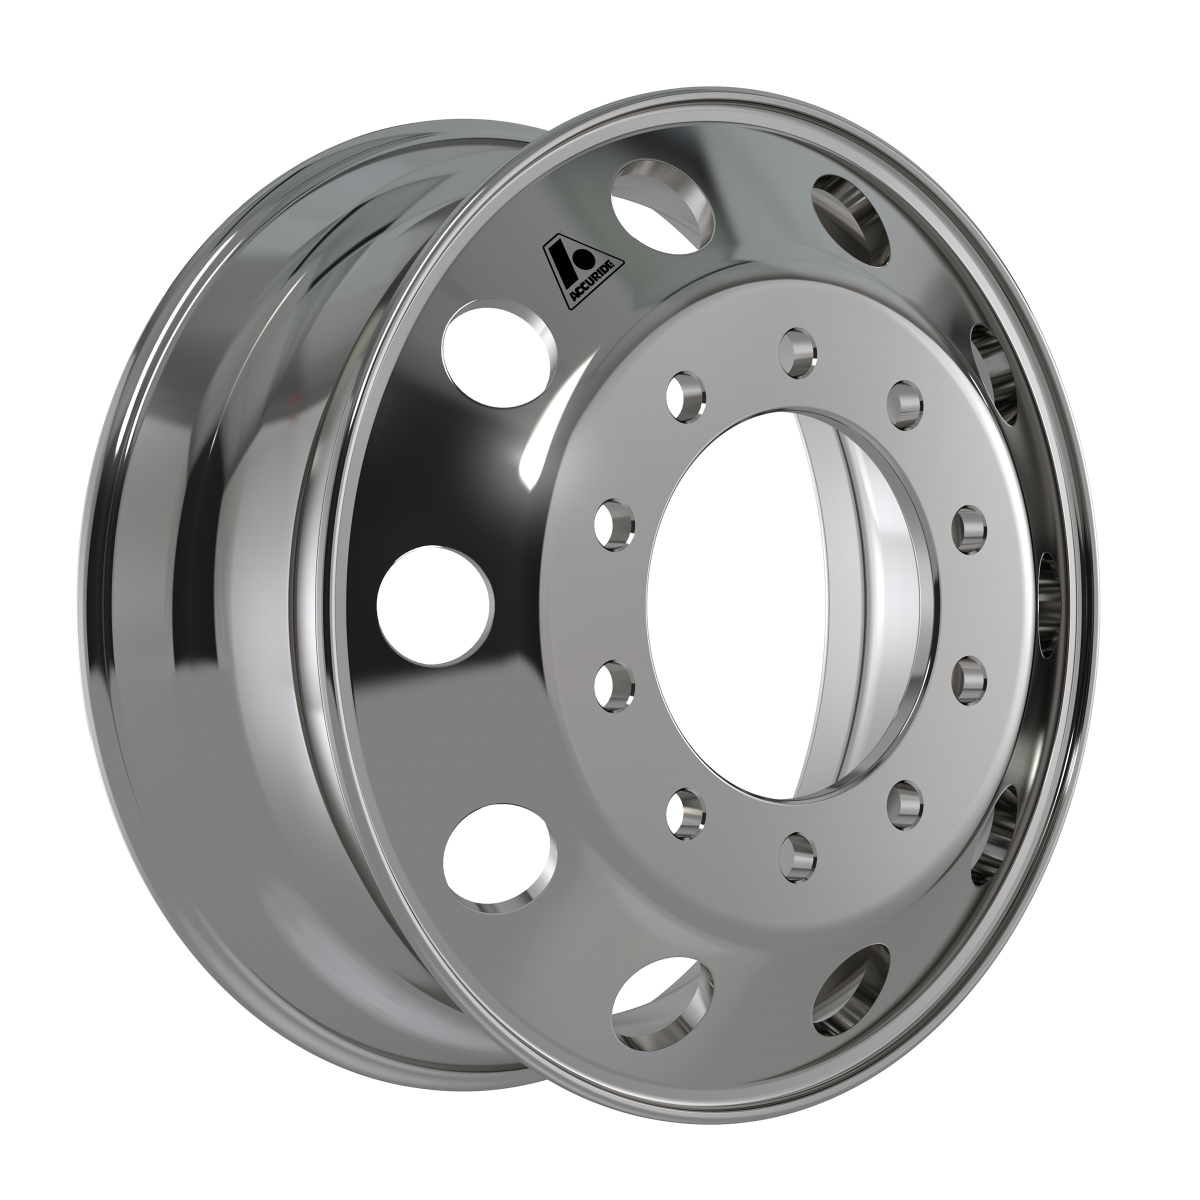 Accuride Announces Lighter-Weight Aluminum Wheel